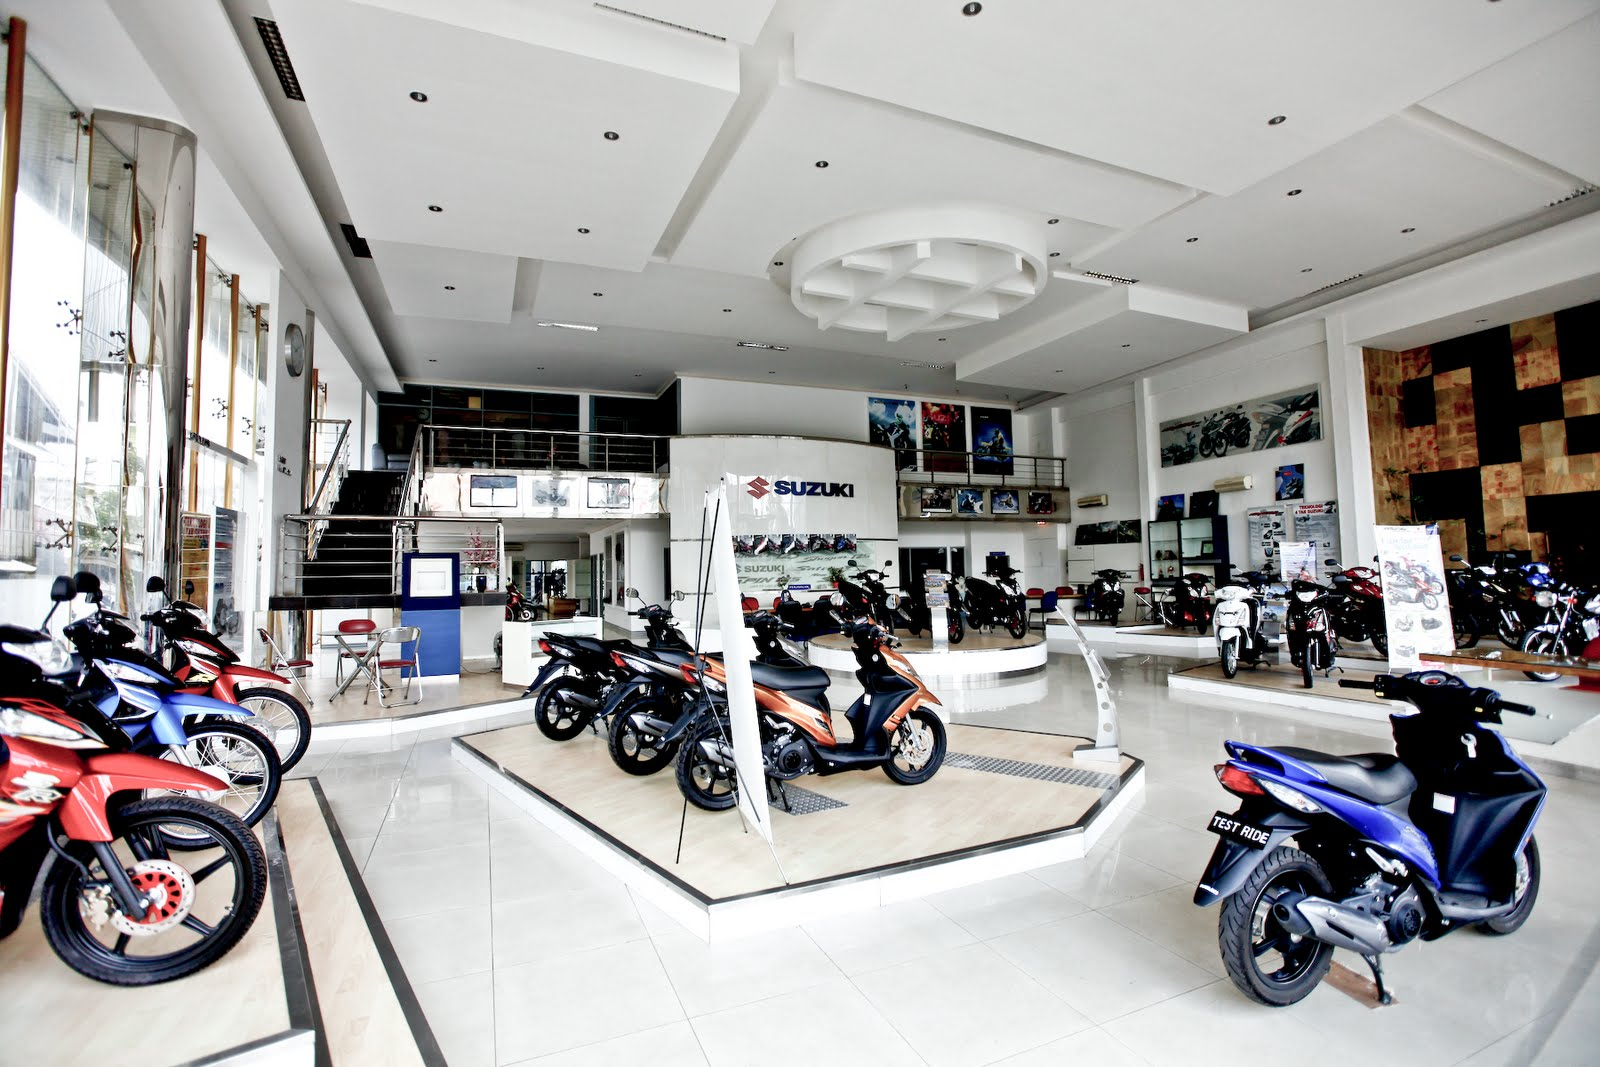 ideal bikes: suzuki motorcycle dealers